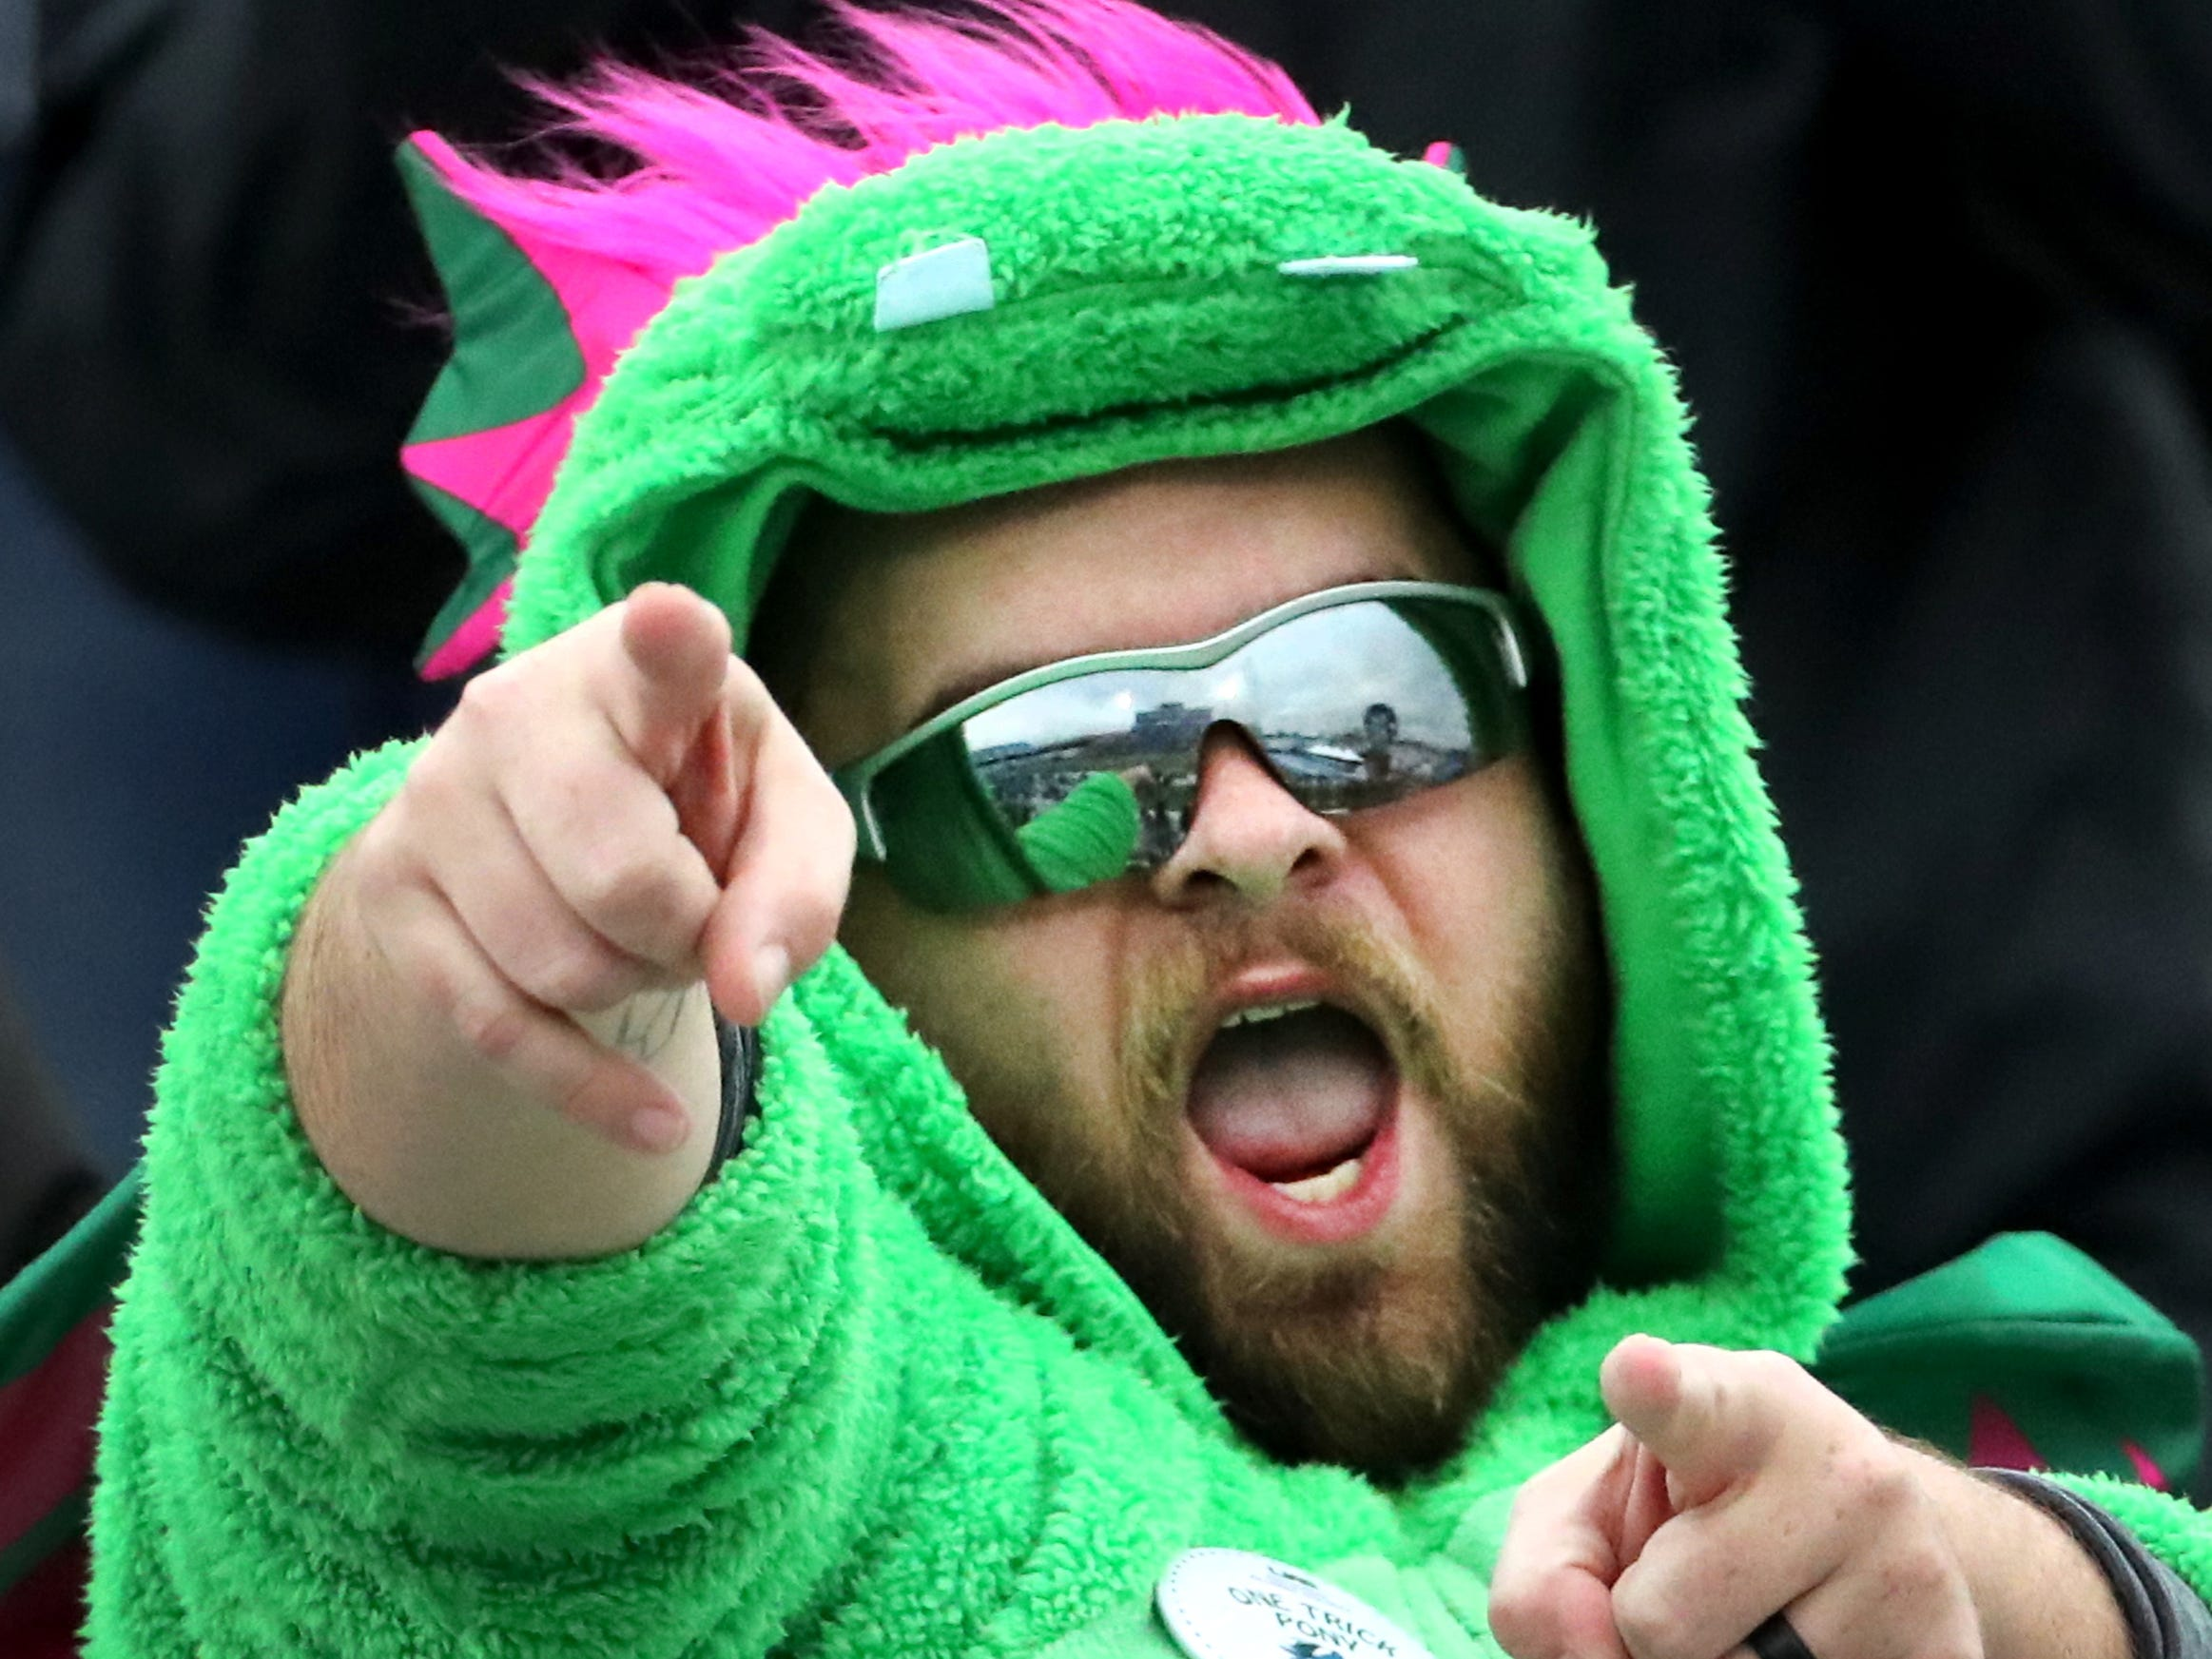 UAB fan Daniel Walter cheers on his team while dressed in a dragon costume during the Conference USA Championship game against MTSU at MTSU on Saturday, Dec. 1, 2018.